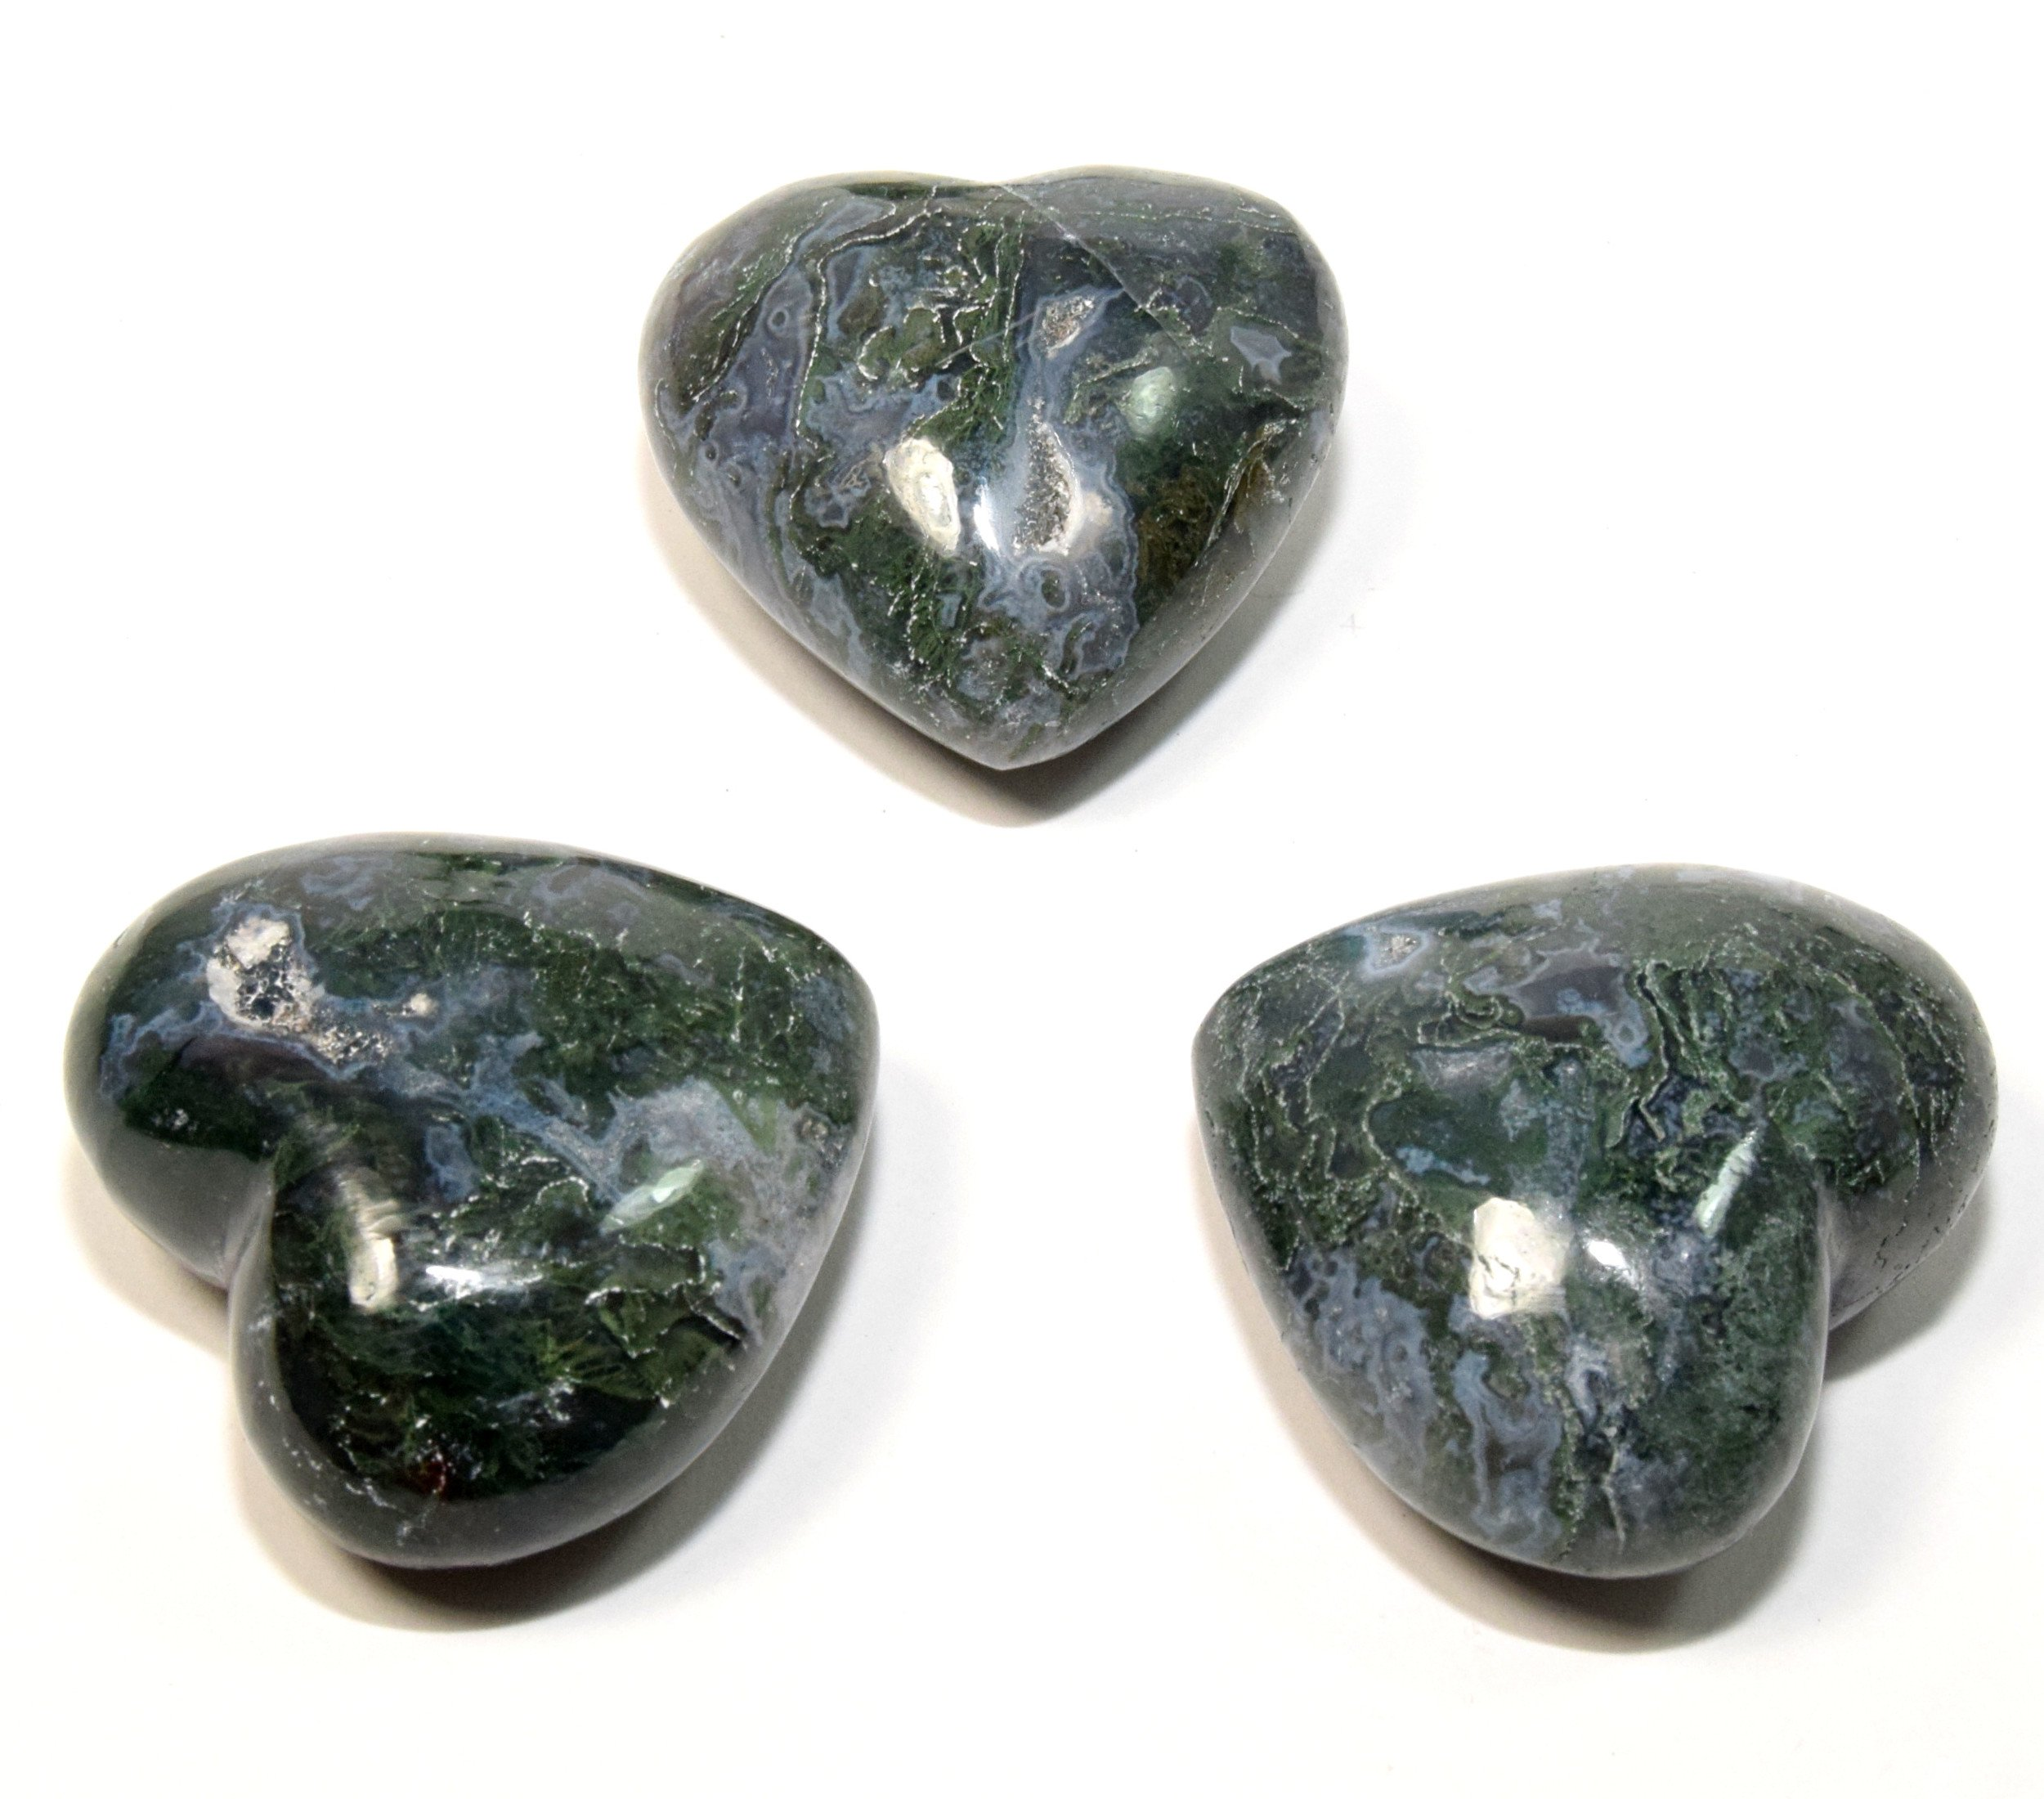 2'' Natural Green Moss Agate Puffy Heart Colorful Polished Sparkling Crystal Chalcedony Mineral Palm Stone Specimen from India (1PC)